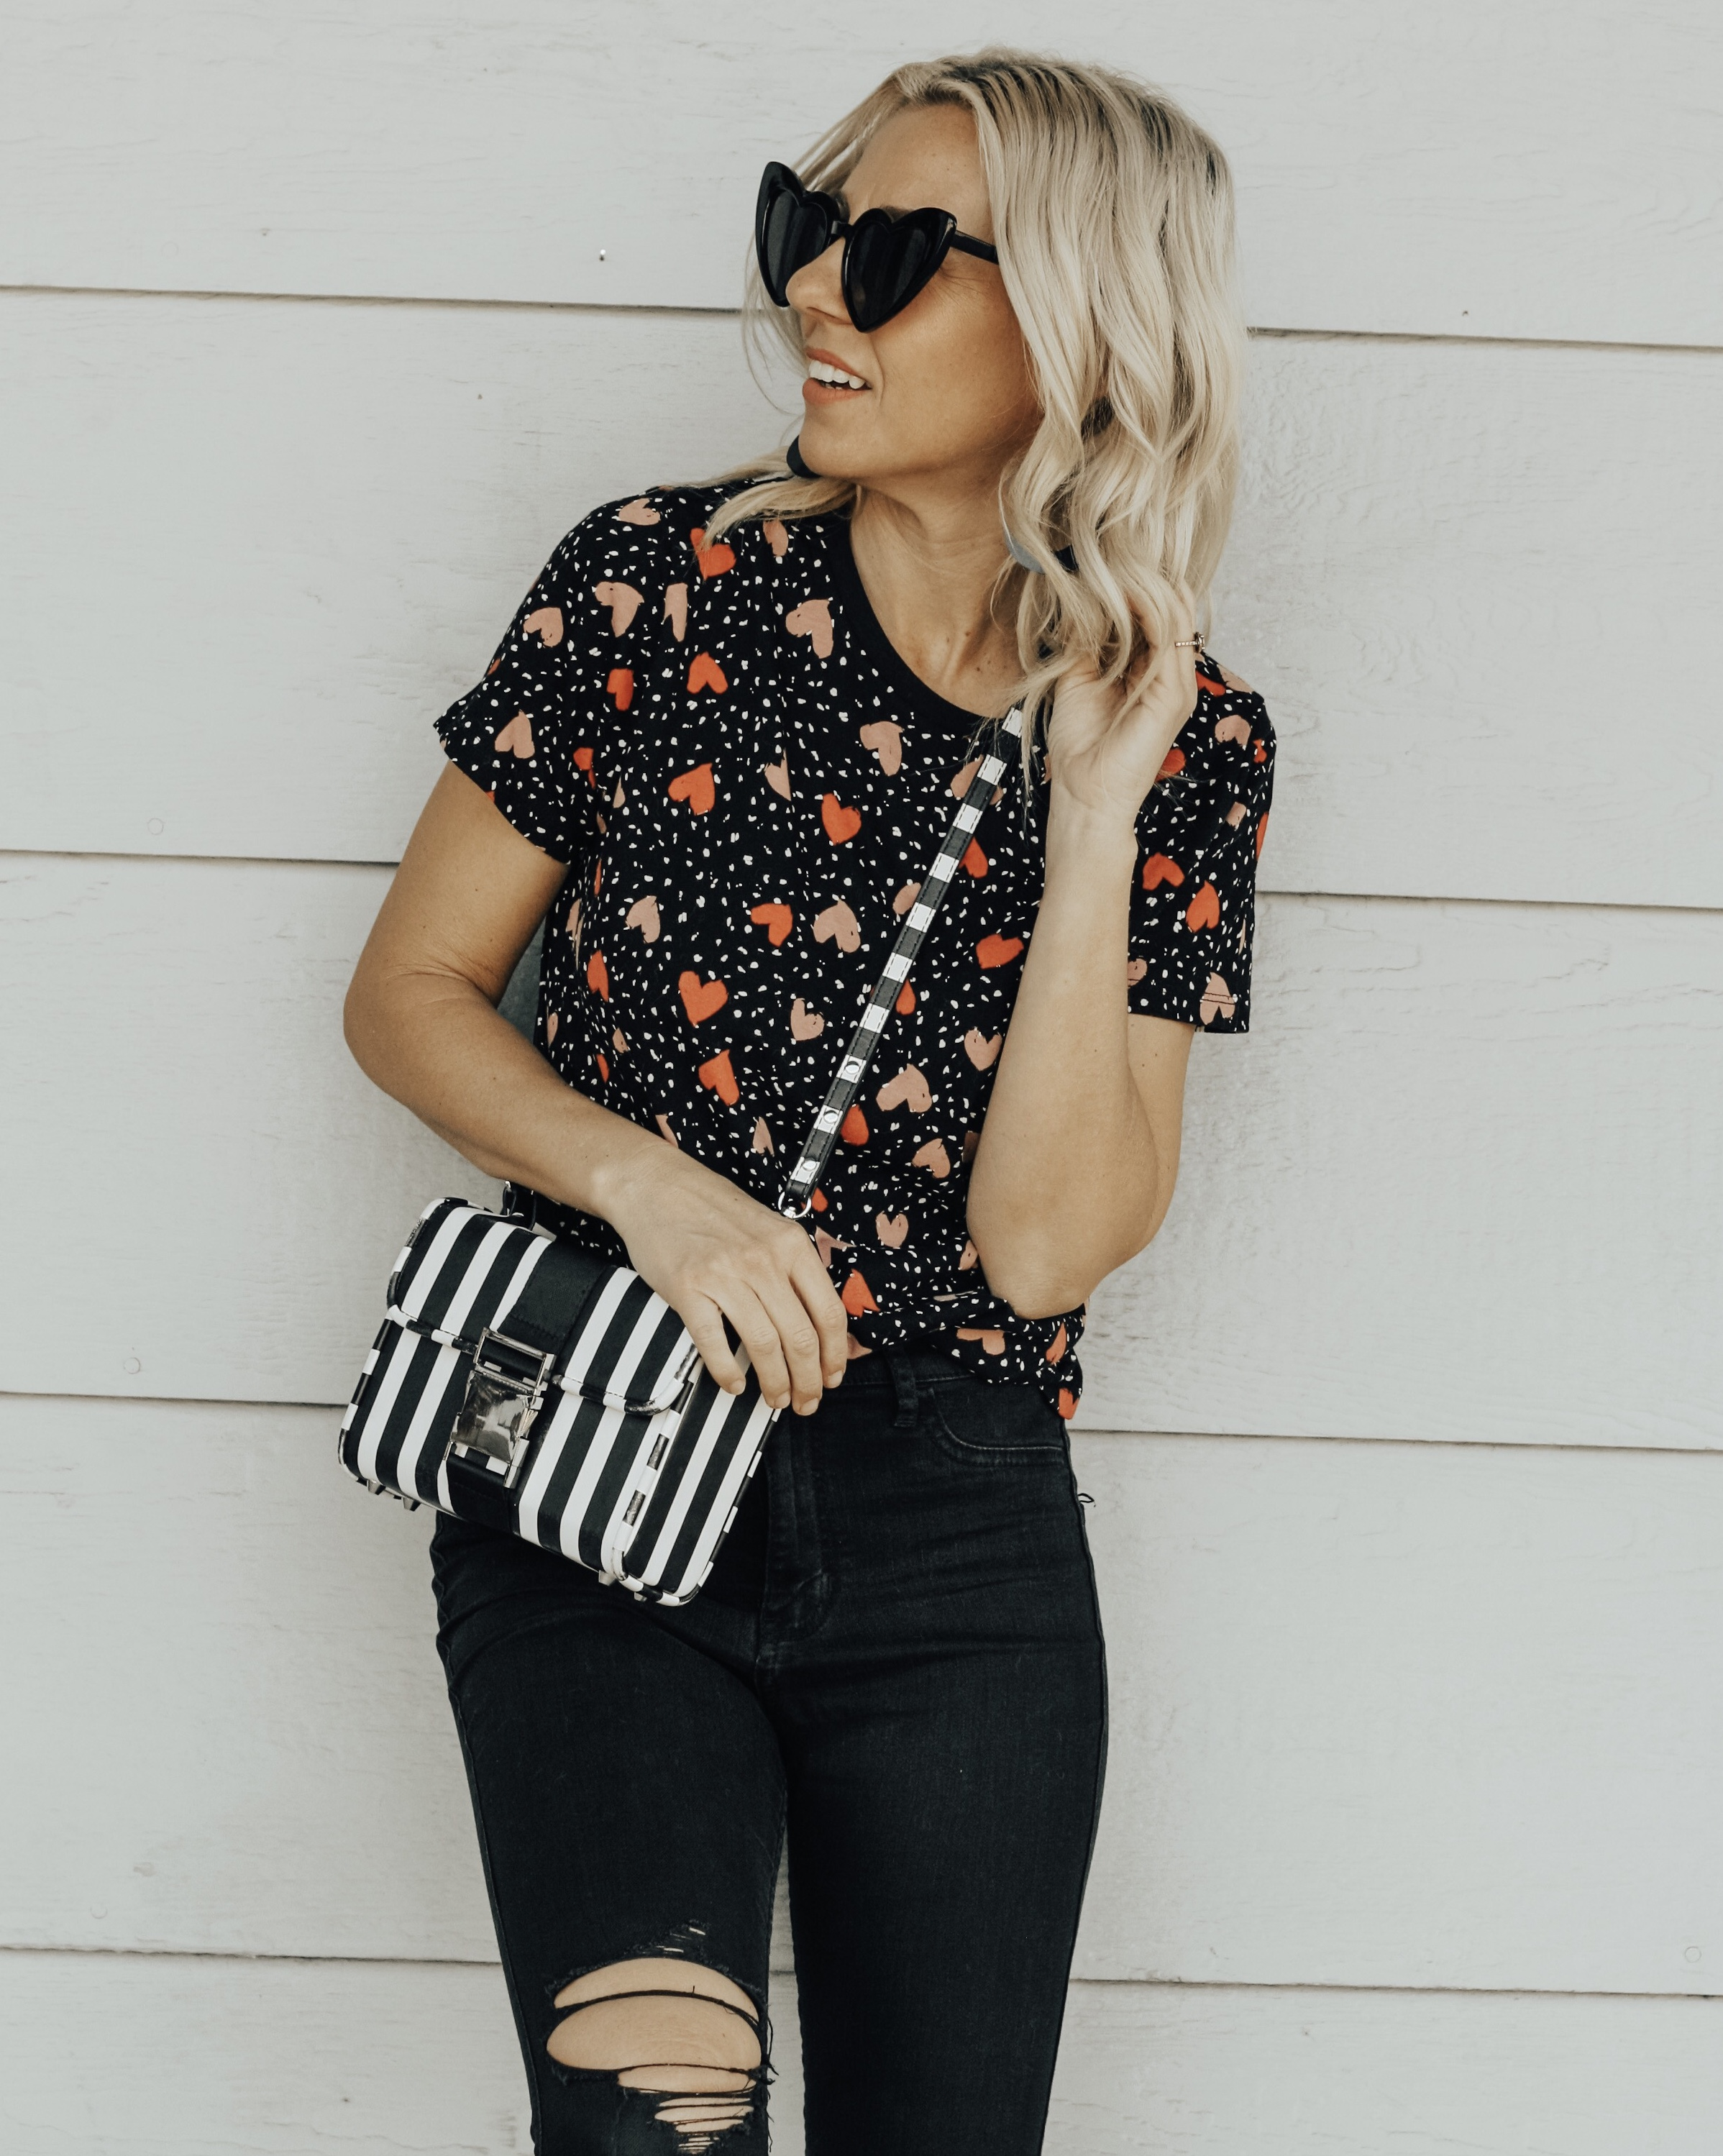 VALENTINE'S INSPIRED GRAPHIC TEES- Jaclyn De Leon Style + holiday style inspo + what to wear this Valentine's day + lips tee + heart tee + spring style + love + heart sunglasses + retro style + 90s fashion + Valentine's style + mom fashion